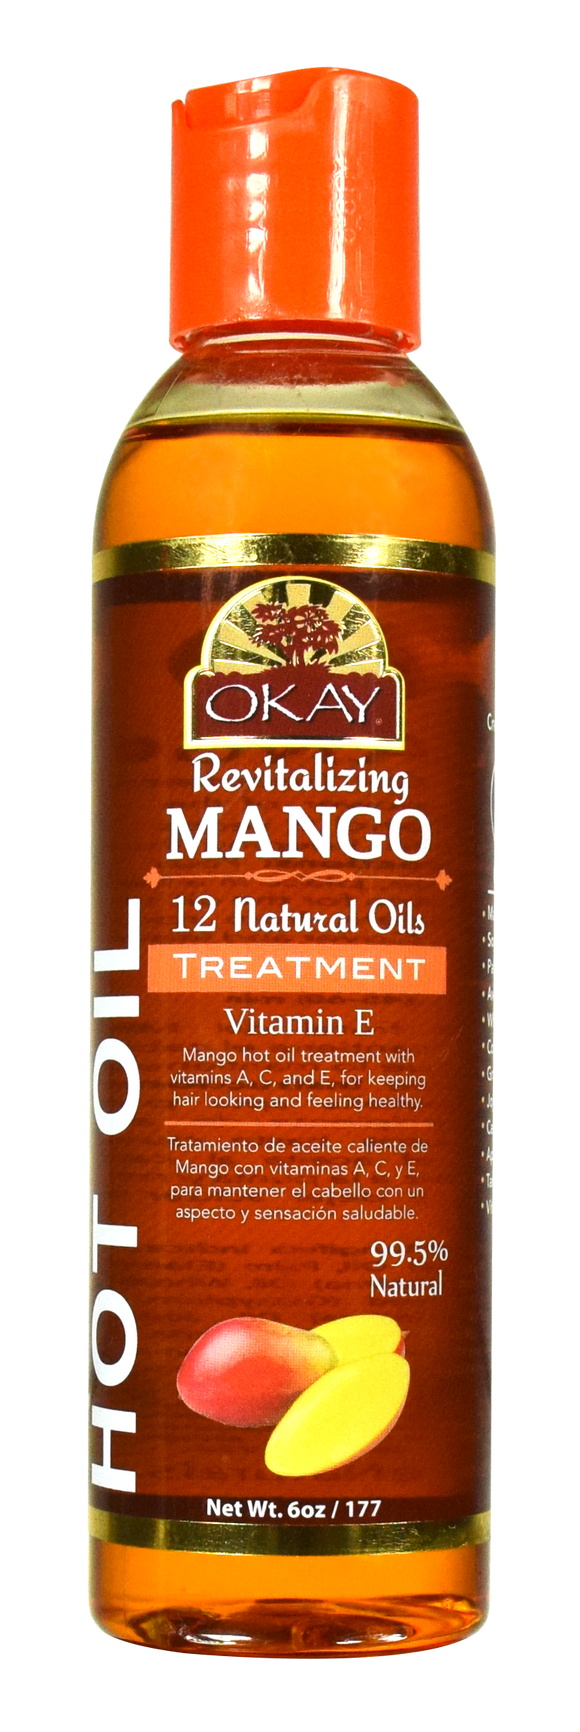 Okay Mango Hot Oil Treatment, 6 Oz